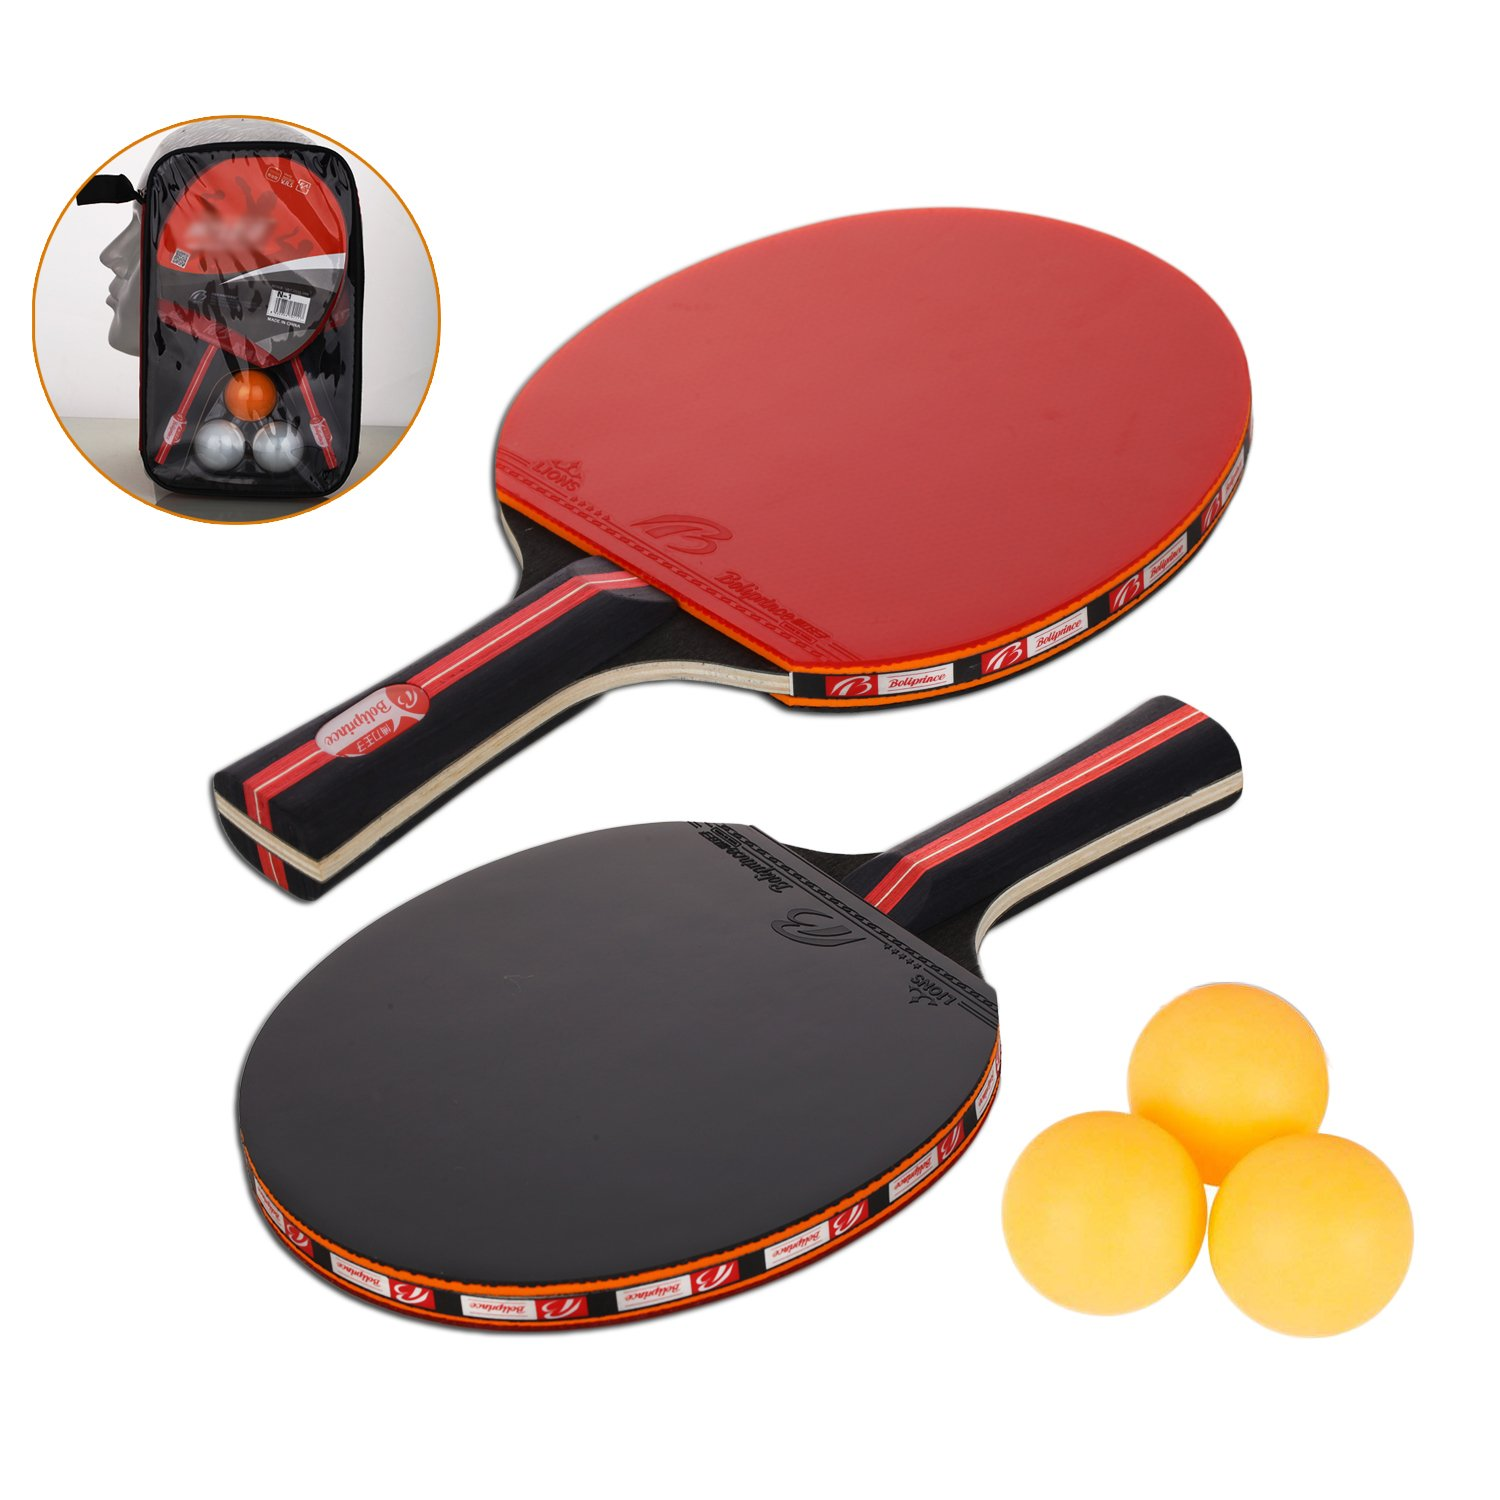 Amaza Table Tennis set, 2 Table Tennis Bats and 3 Ping Pong Balls with Carry Bag for Outdoor Indoor Sports Activities Amateurs Beginners